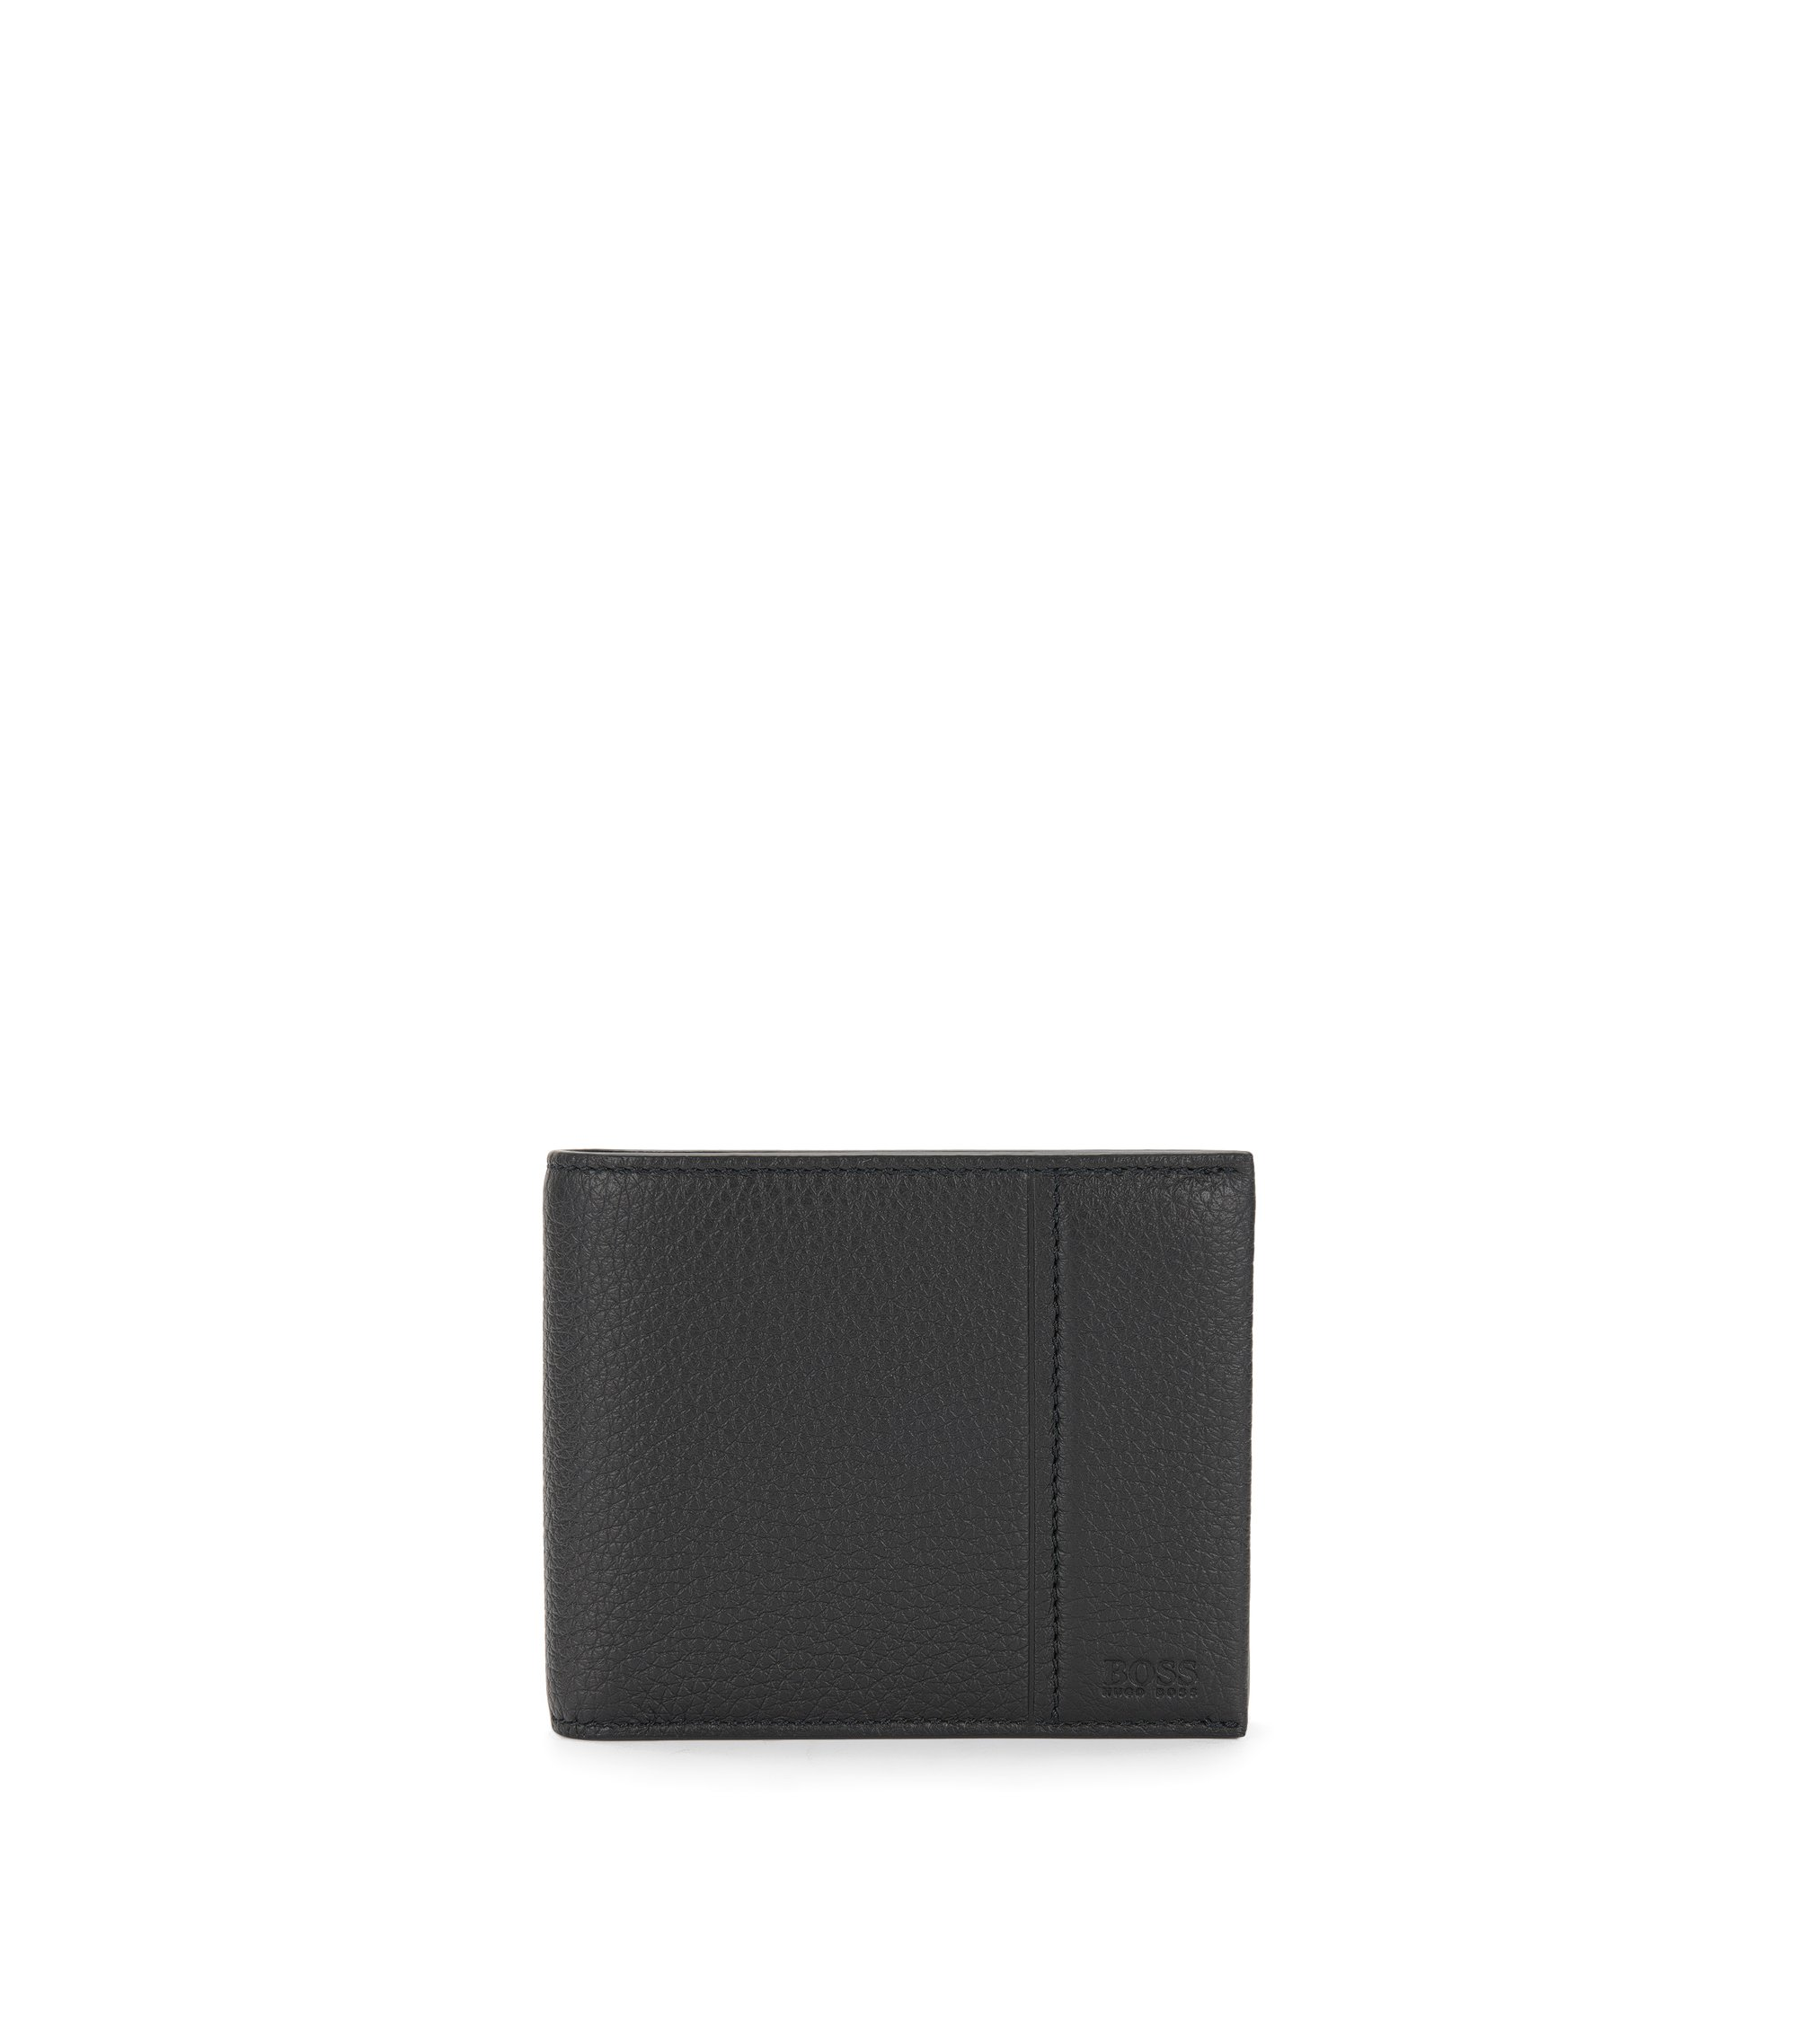 Trifold wallet in grained leather by BOSS, Black